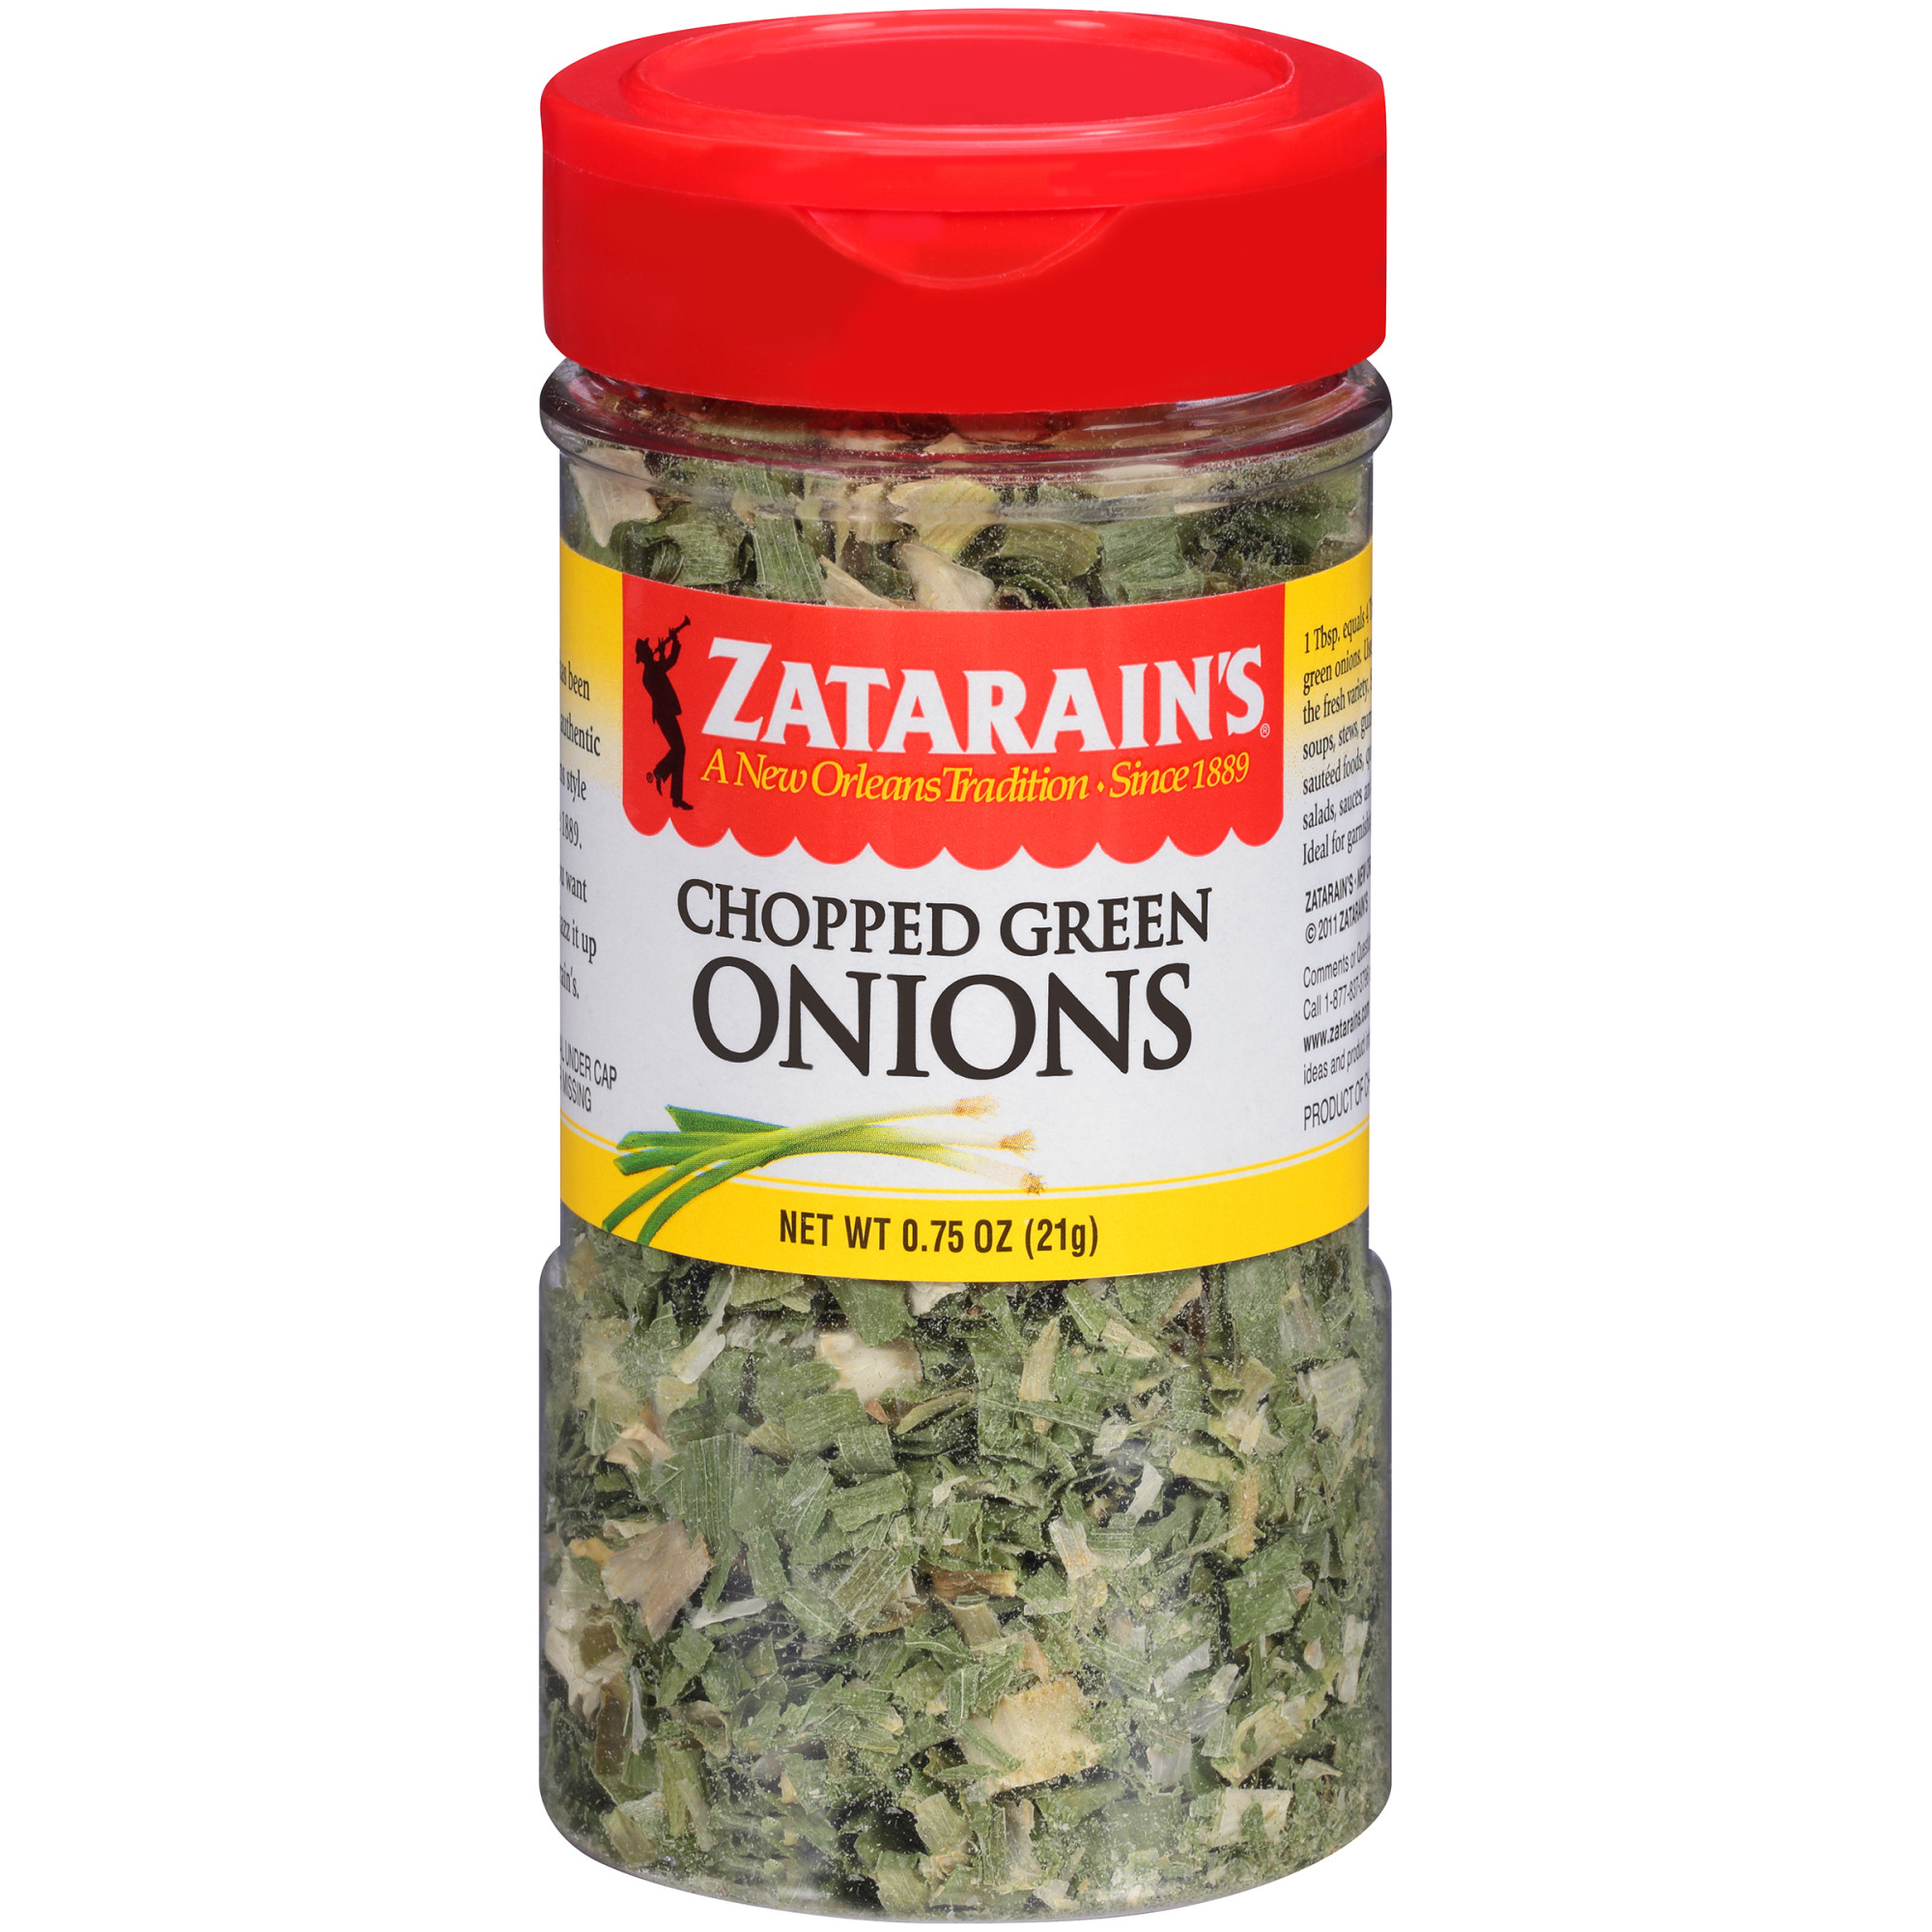 (3 Pack) Zatarain's Chopped Green Onions, 0.75 oz